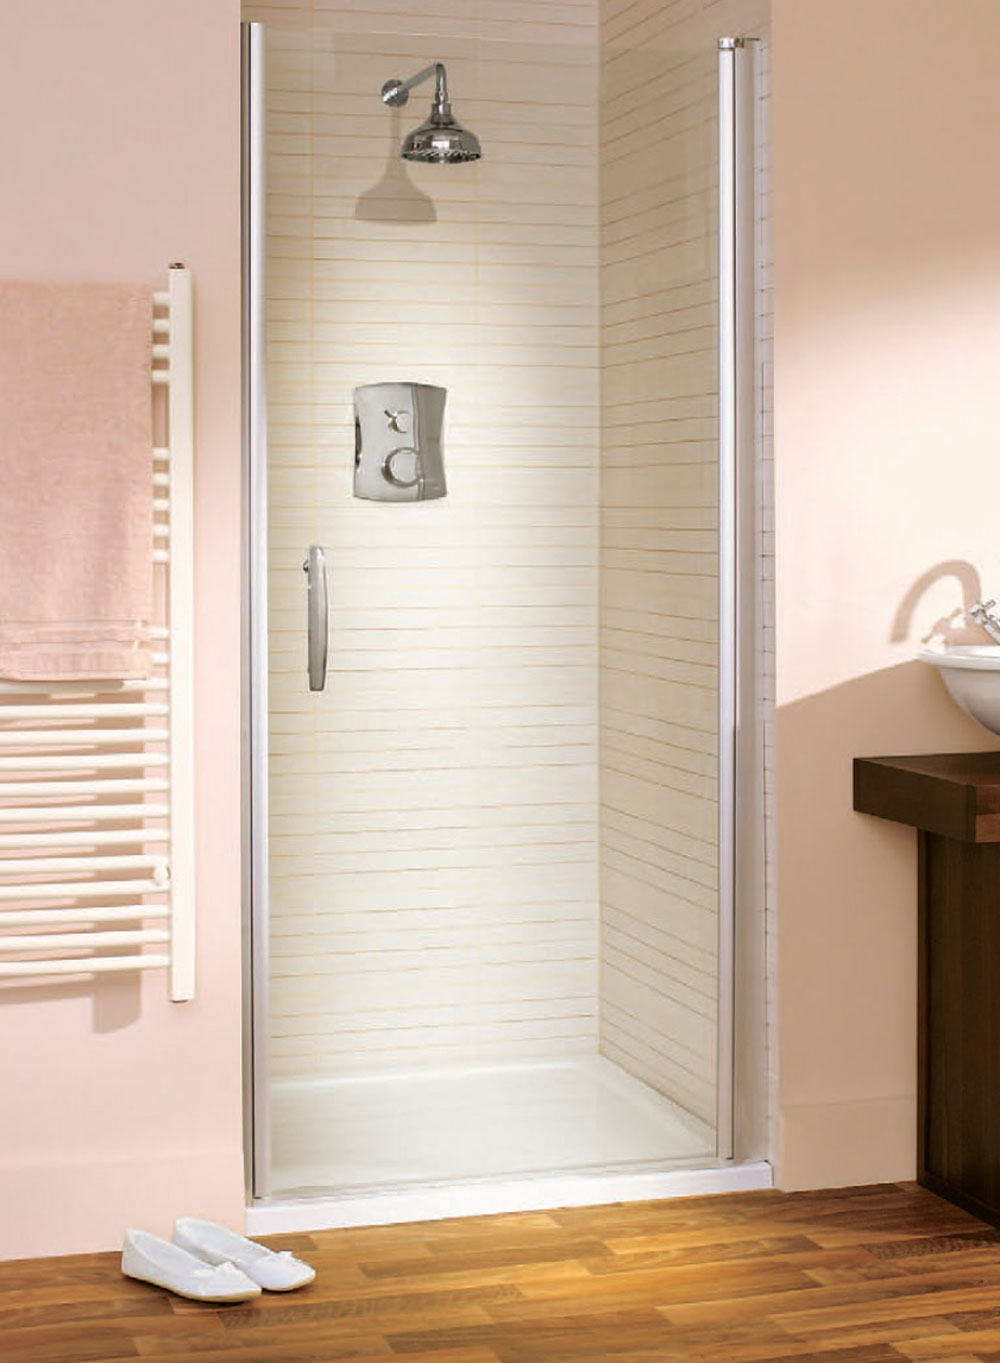 Awesome frameless shower doors options ideas for Cool shower door ideas